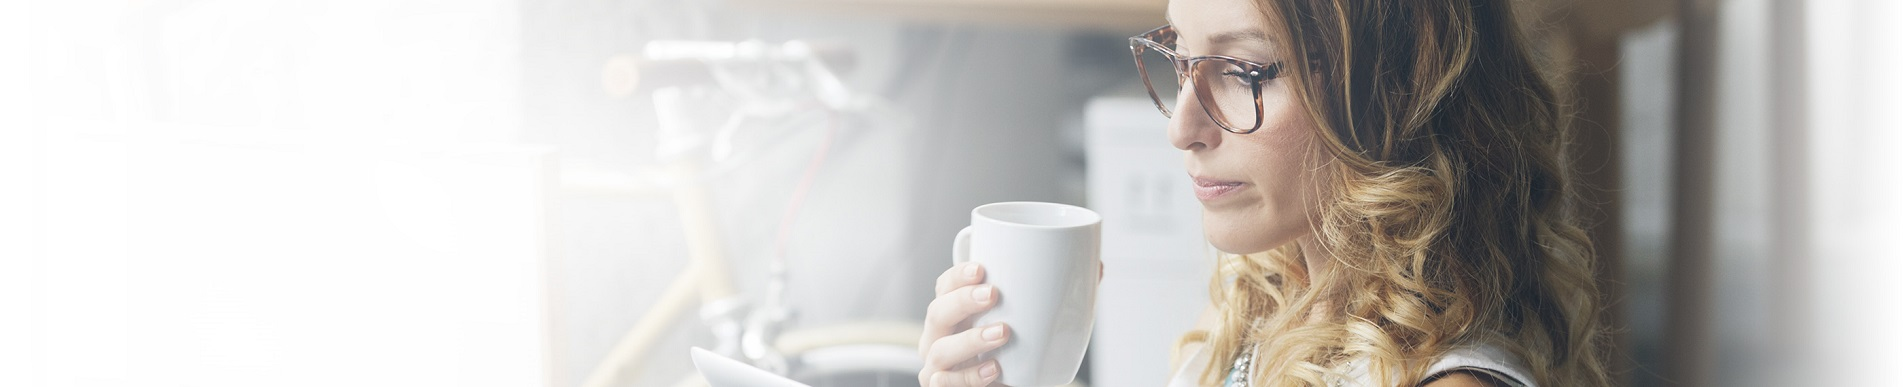 MOTRIN® helps woman enjoy drinking her coffee without headache pain